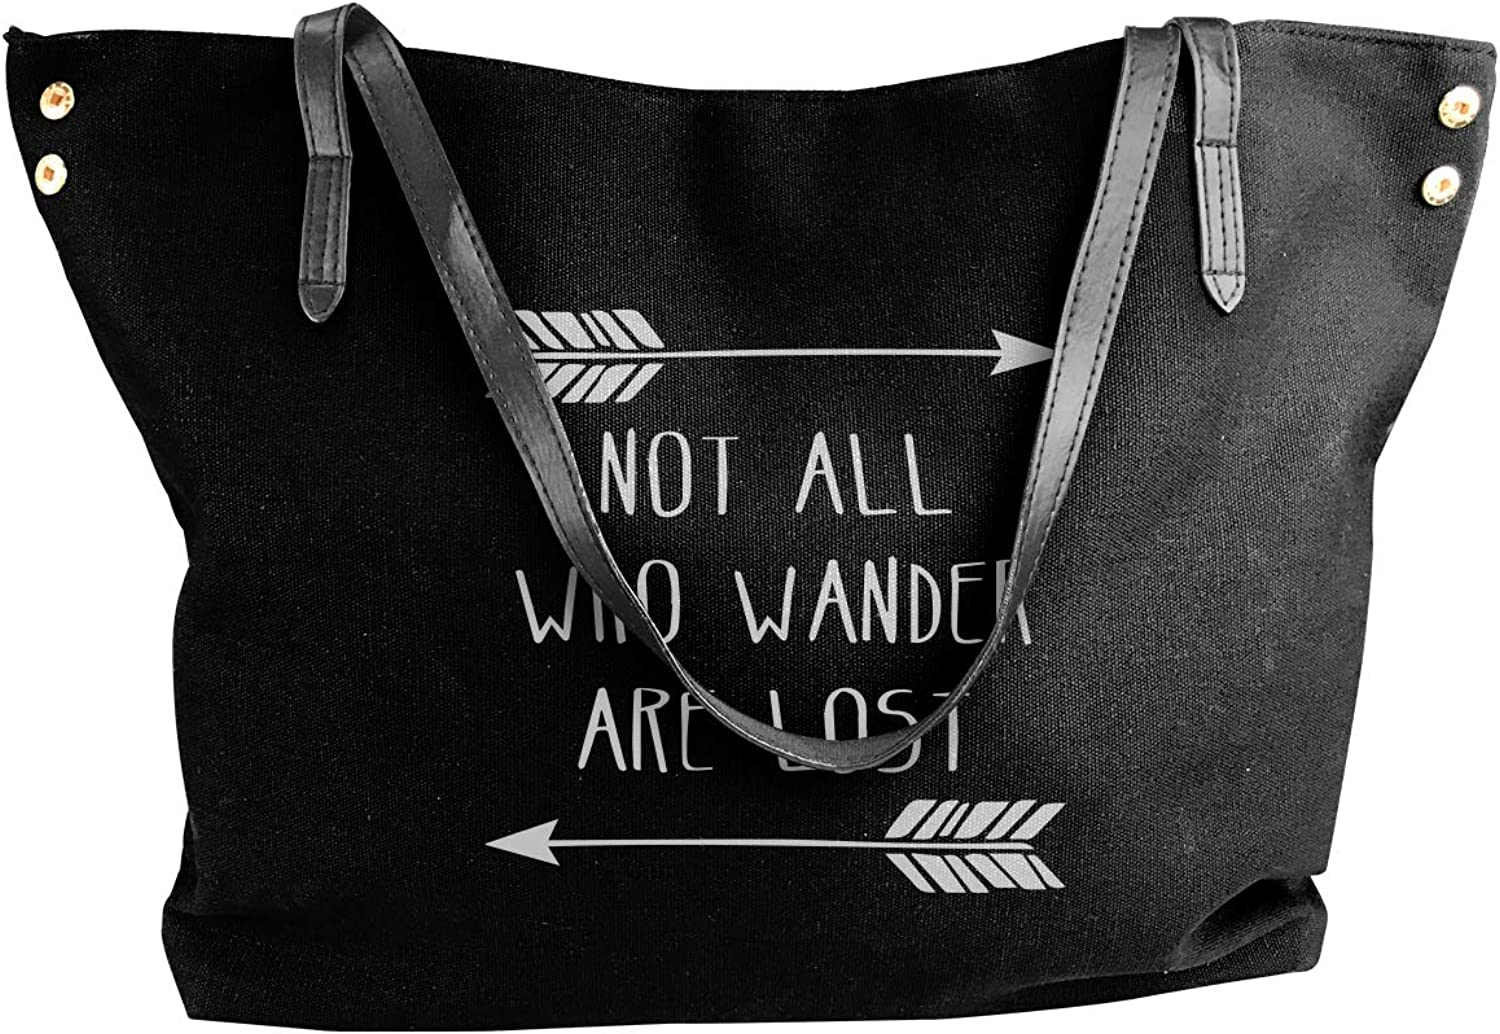 Not All Who Wander Are Lost Women'S Leisure Canvas Sling Bag For Travel Work Bag